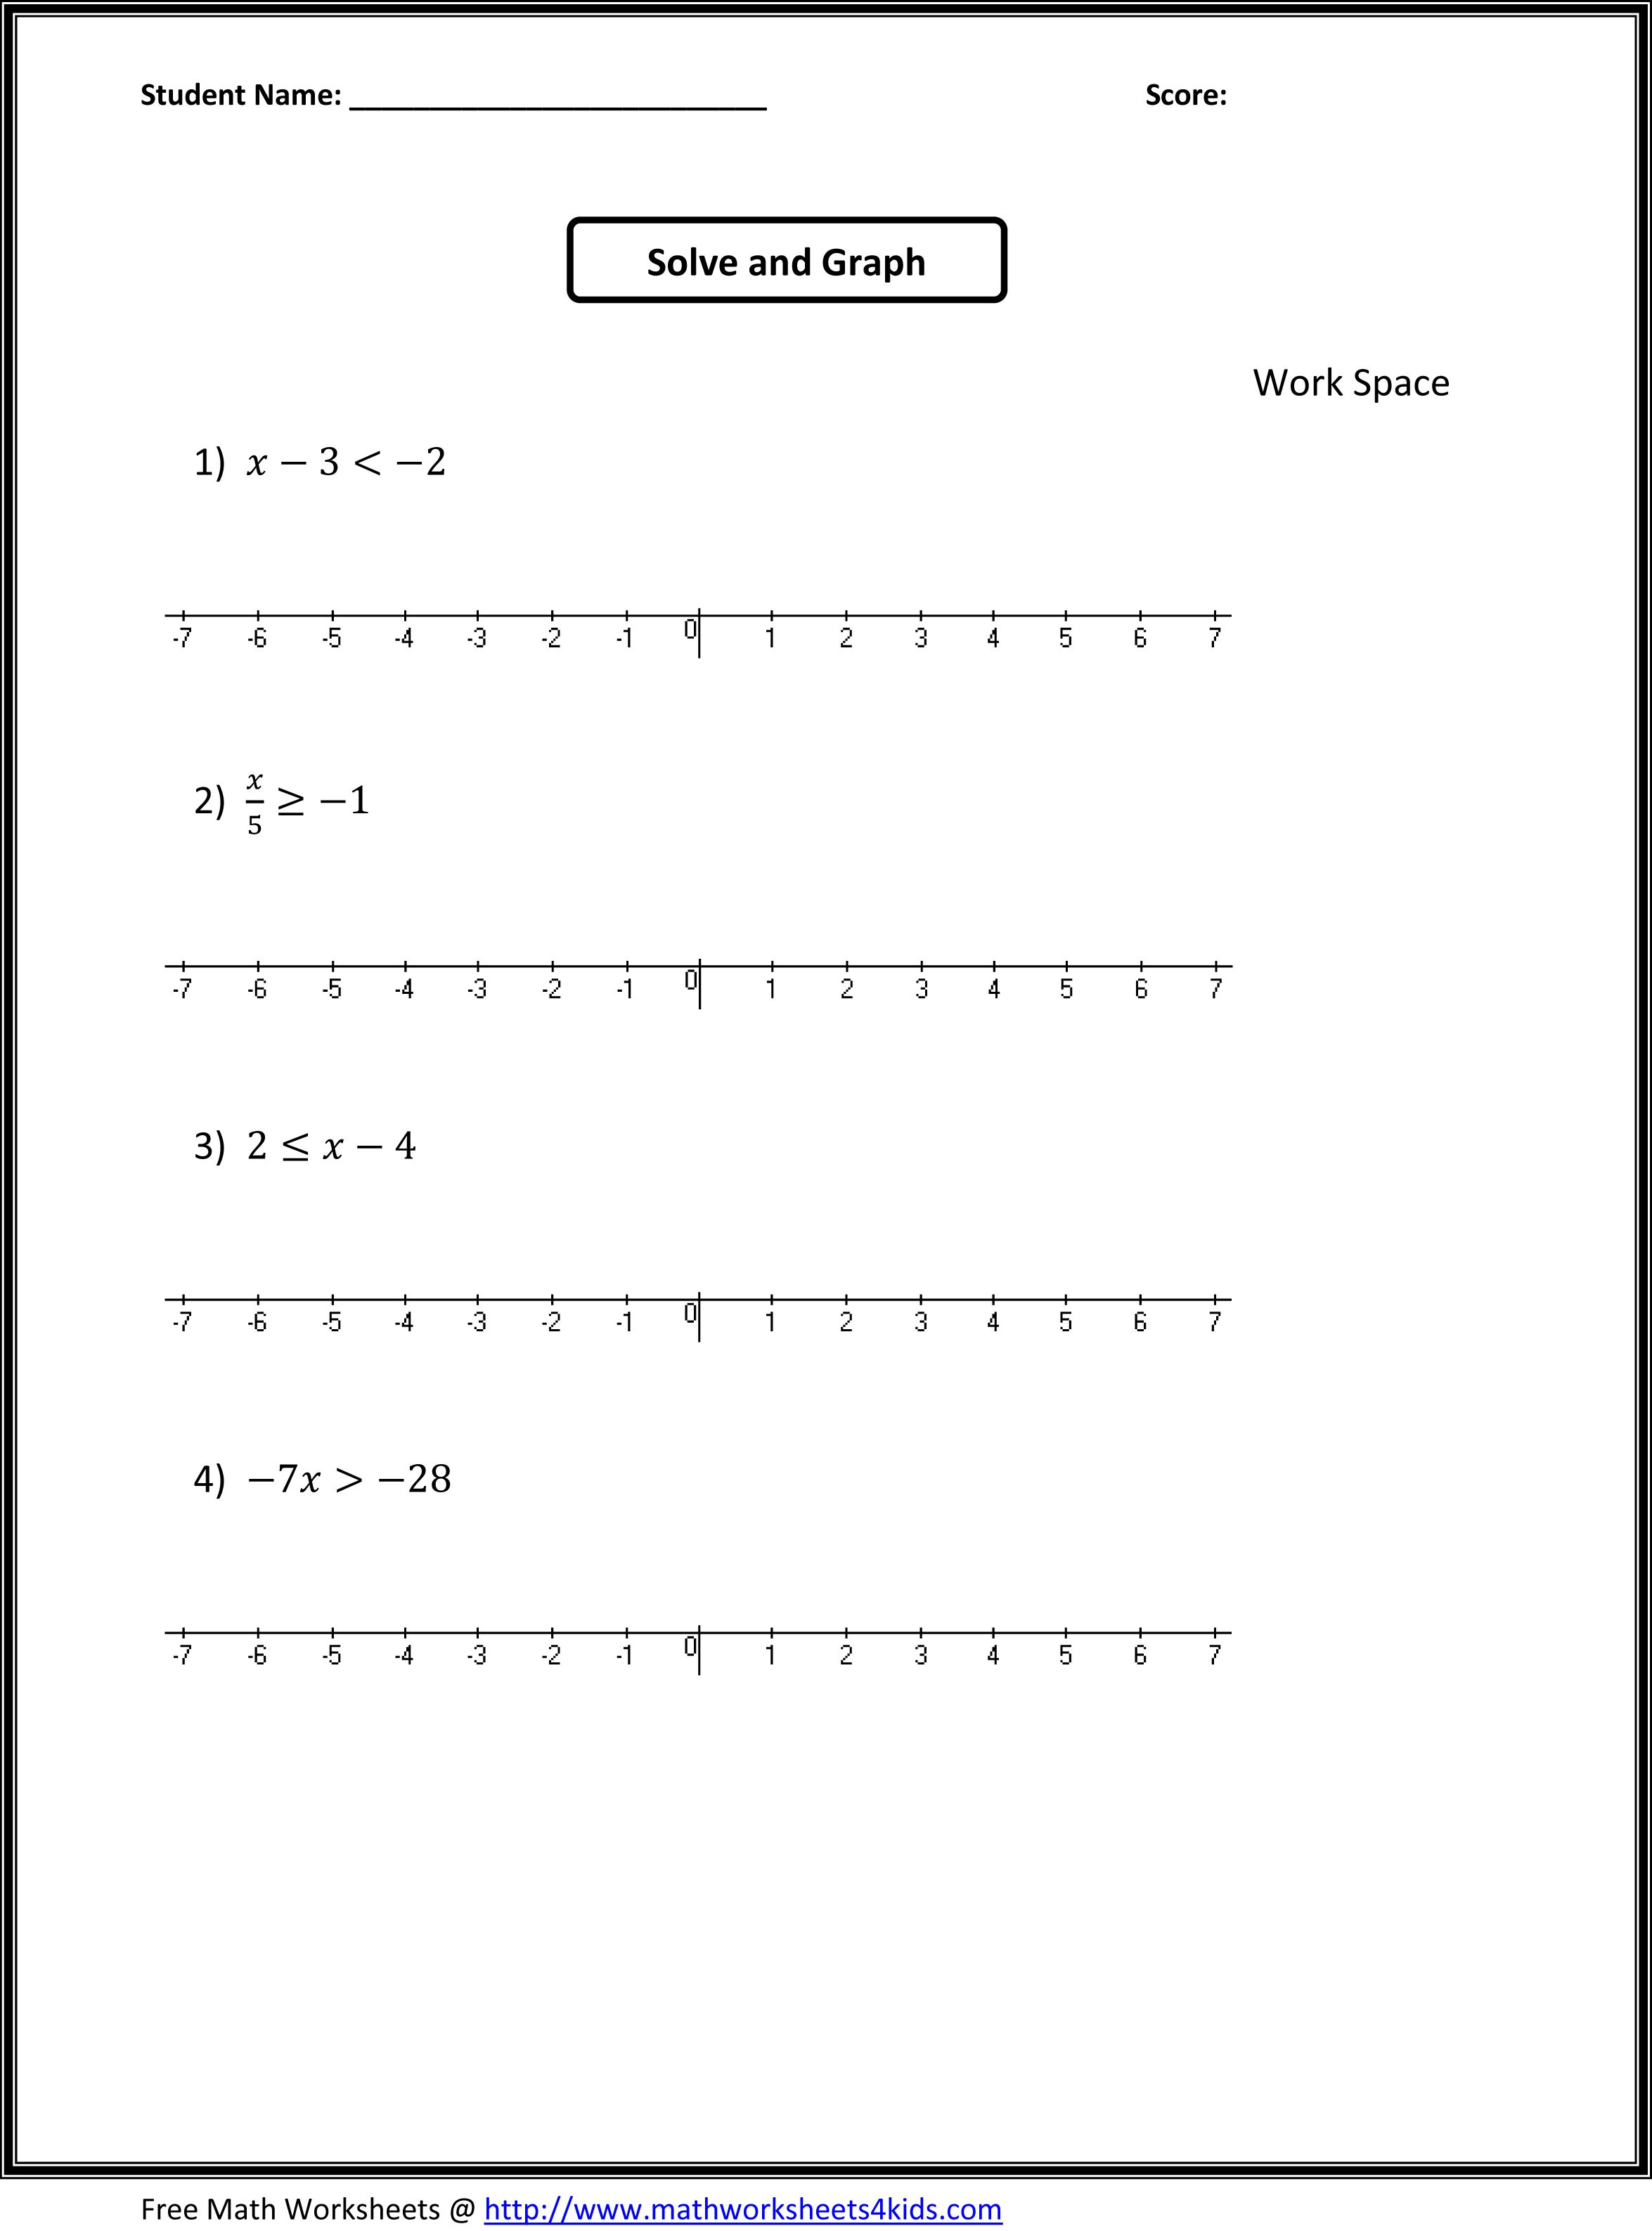 Worksheets Free Math Worksheets For 7th Grade 7th grade algebra worksheets math places math